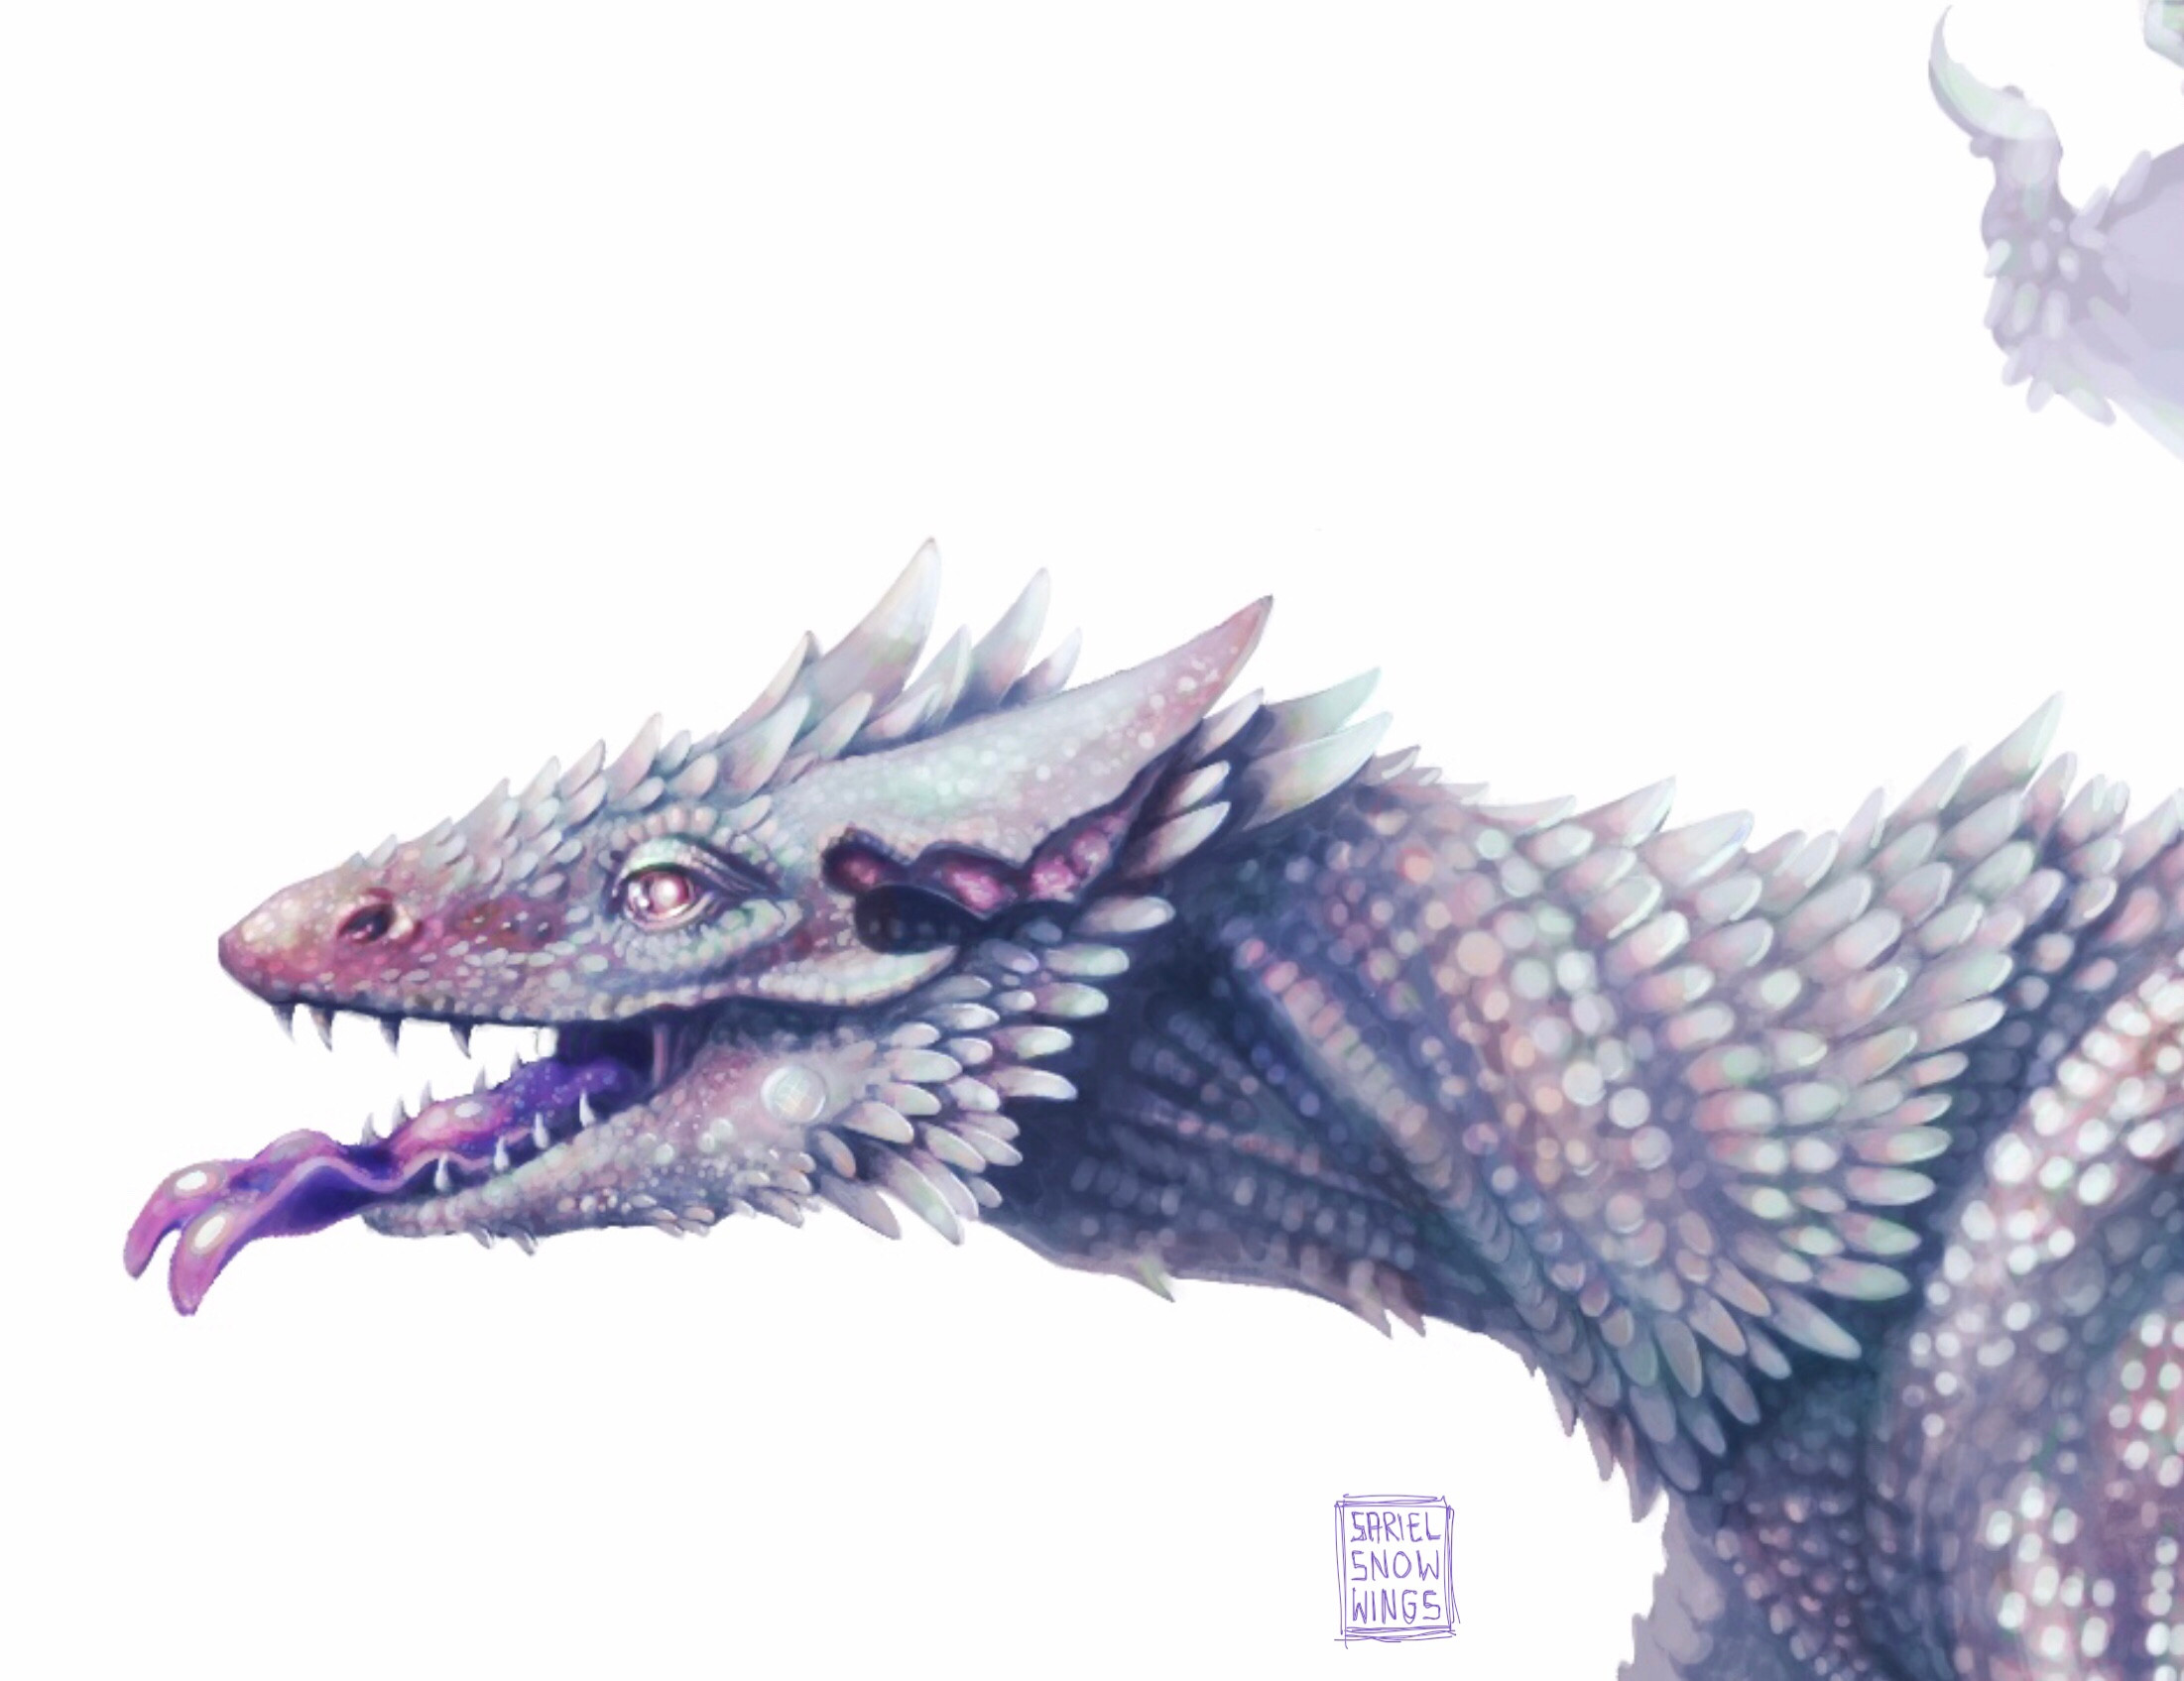 Detail shot of the head. I was inspired by monitor lizards skulls and the tongue of a blue tong skink. I wanted him to look intelligent and playful (he is my childhood imaginary dragon friend after all) yet dangerous if needed.